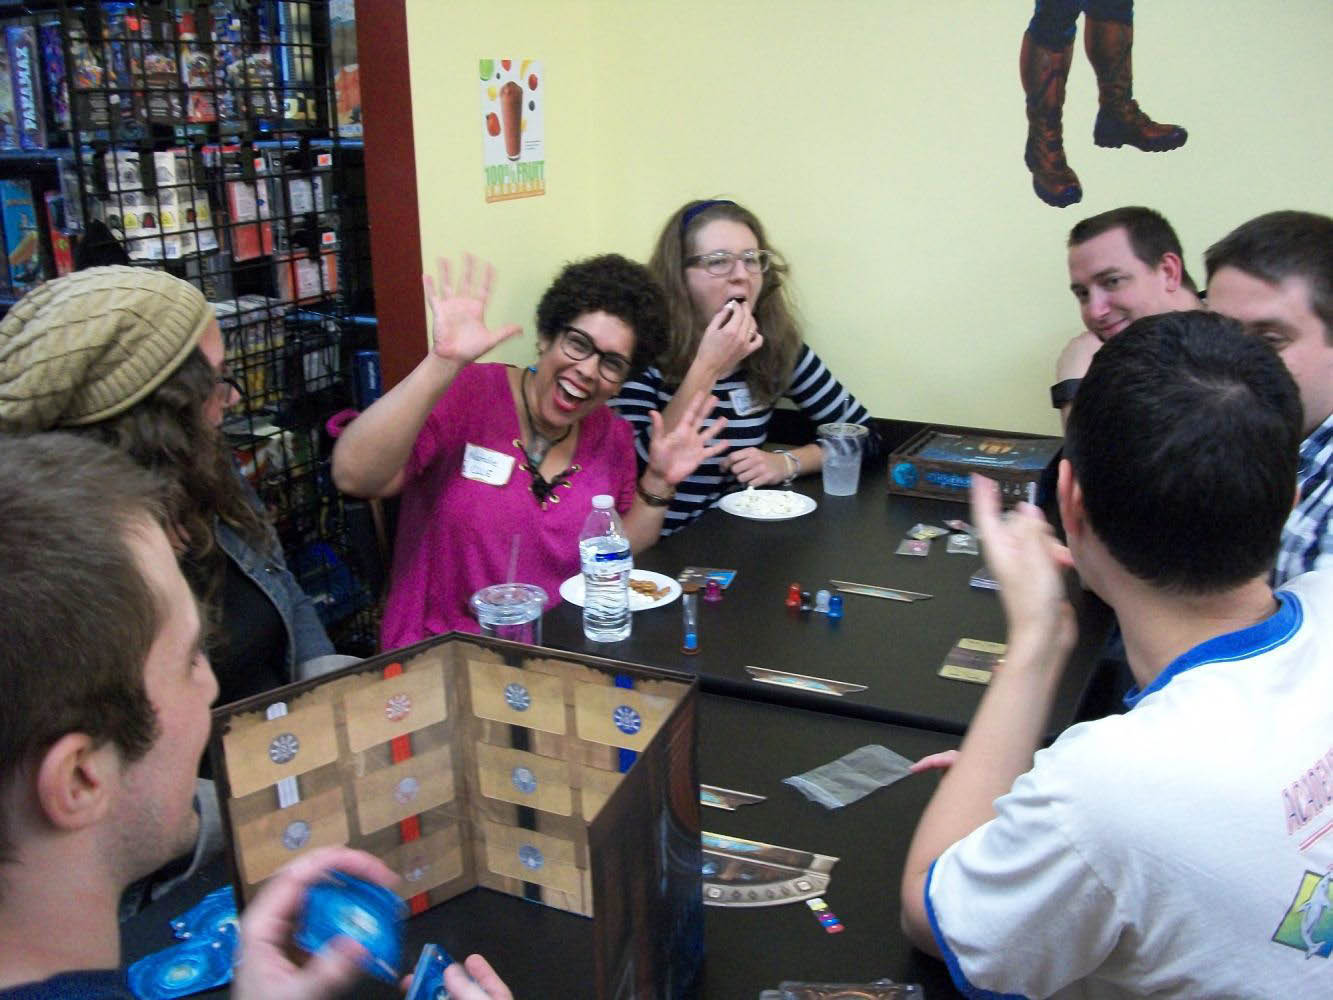 Play board games in Harrisburg, Camp Hill and Colonial Park